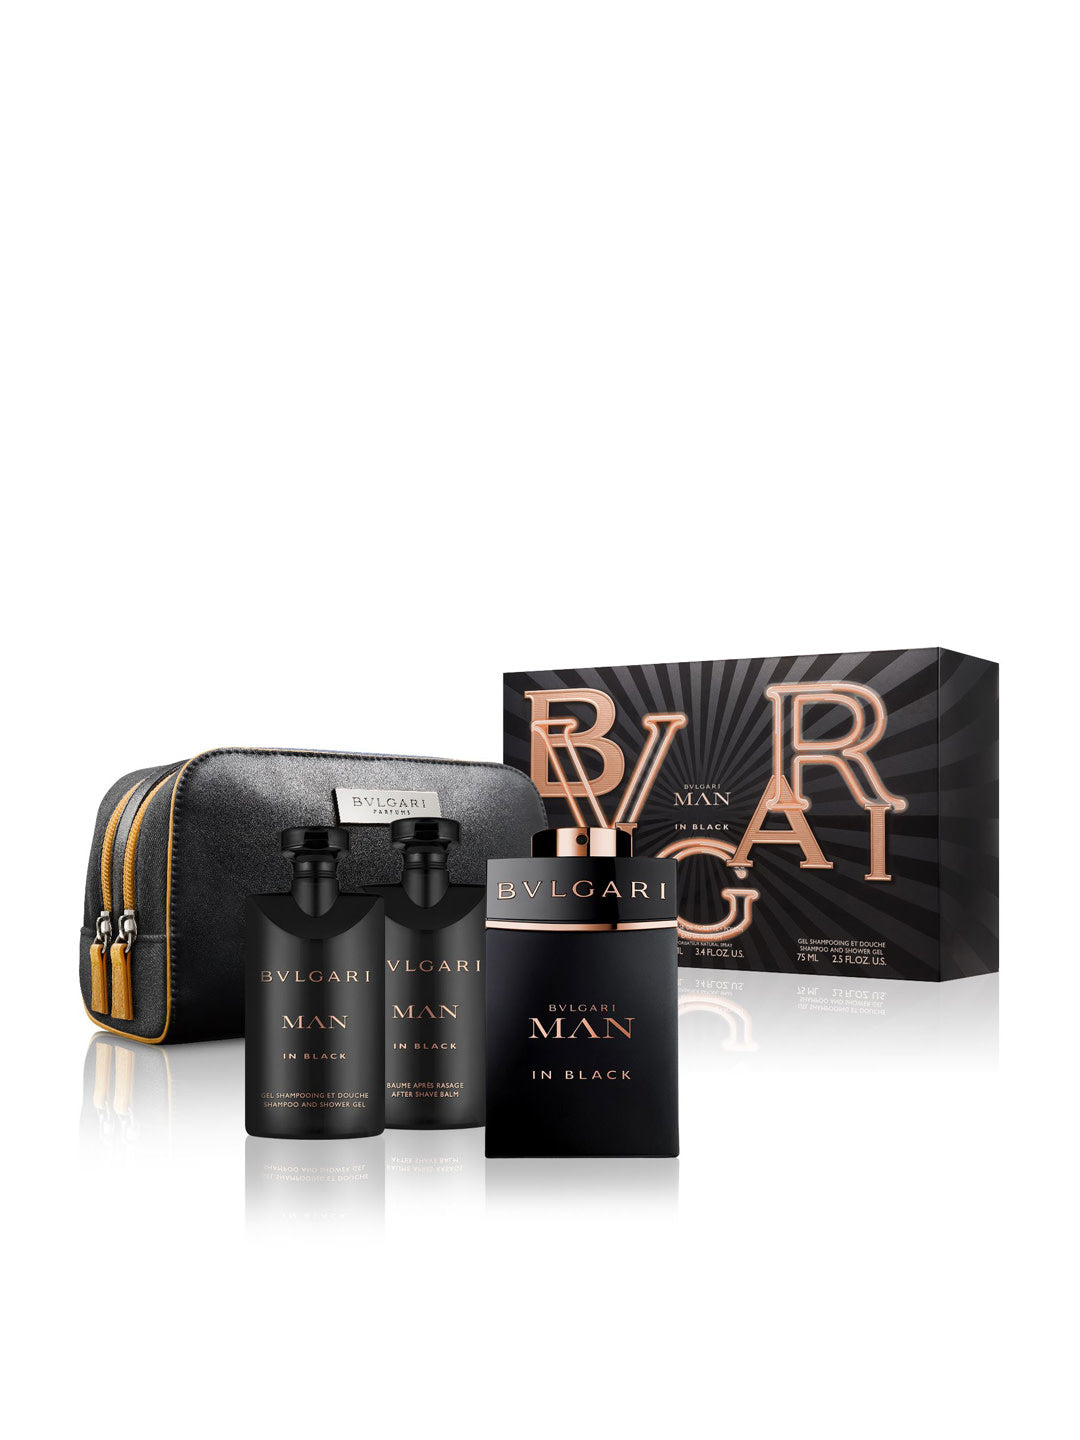 Bvlgari Man In Black Fragrance Gift Set with Pouch